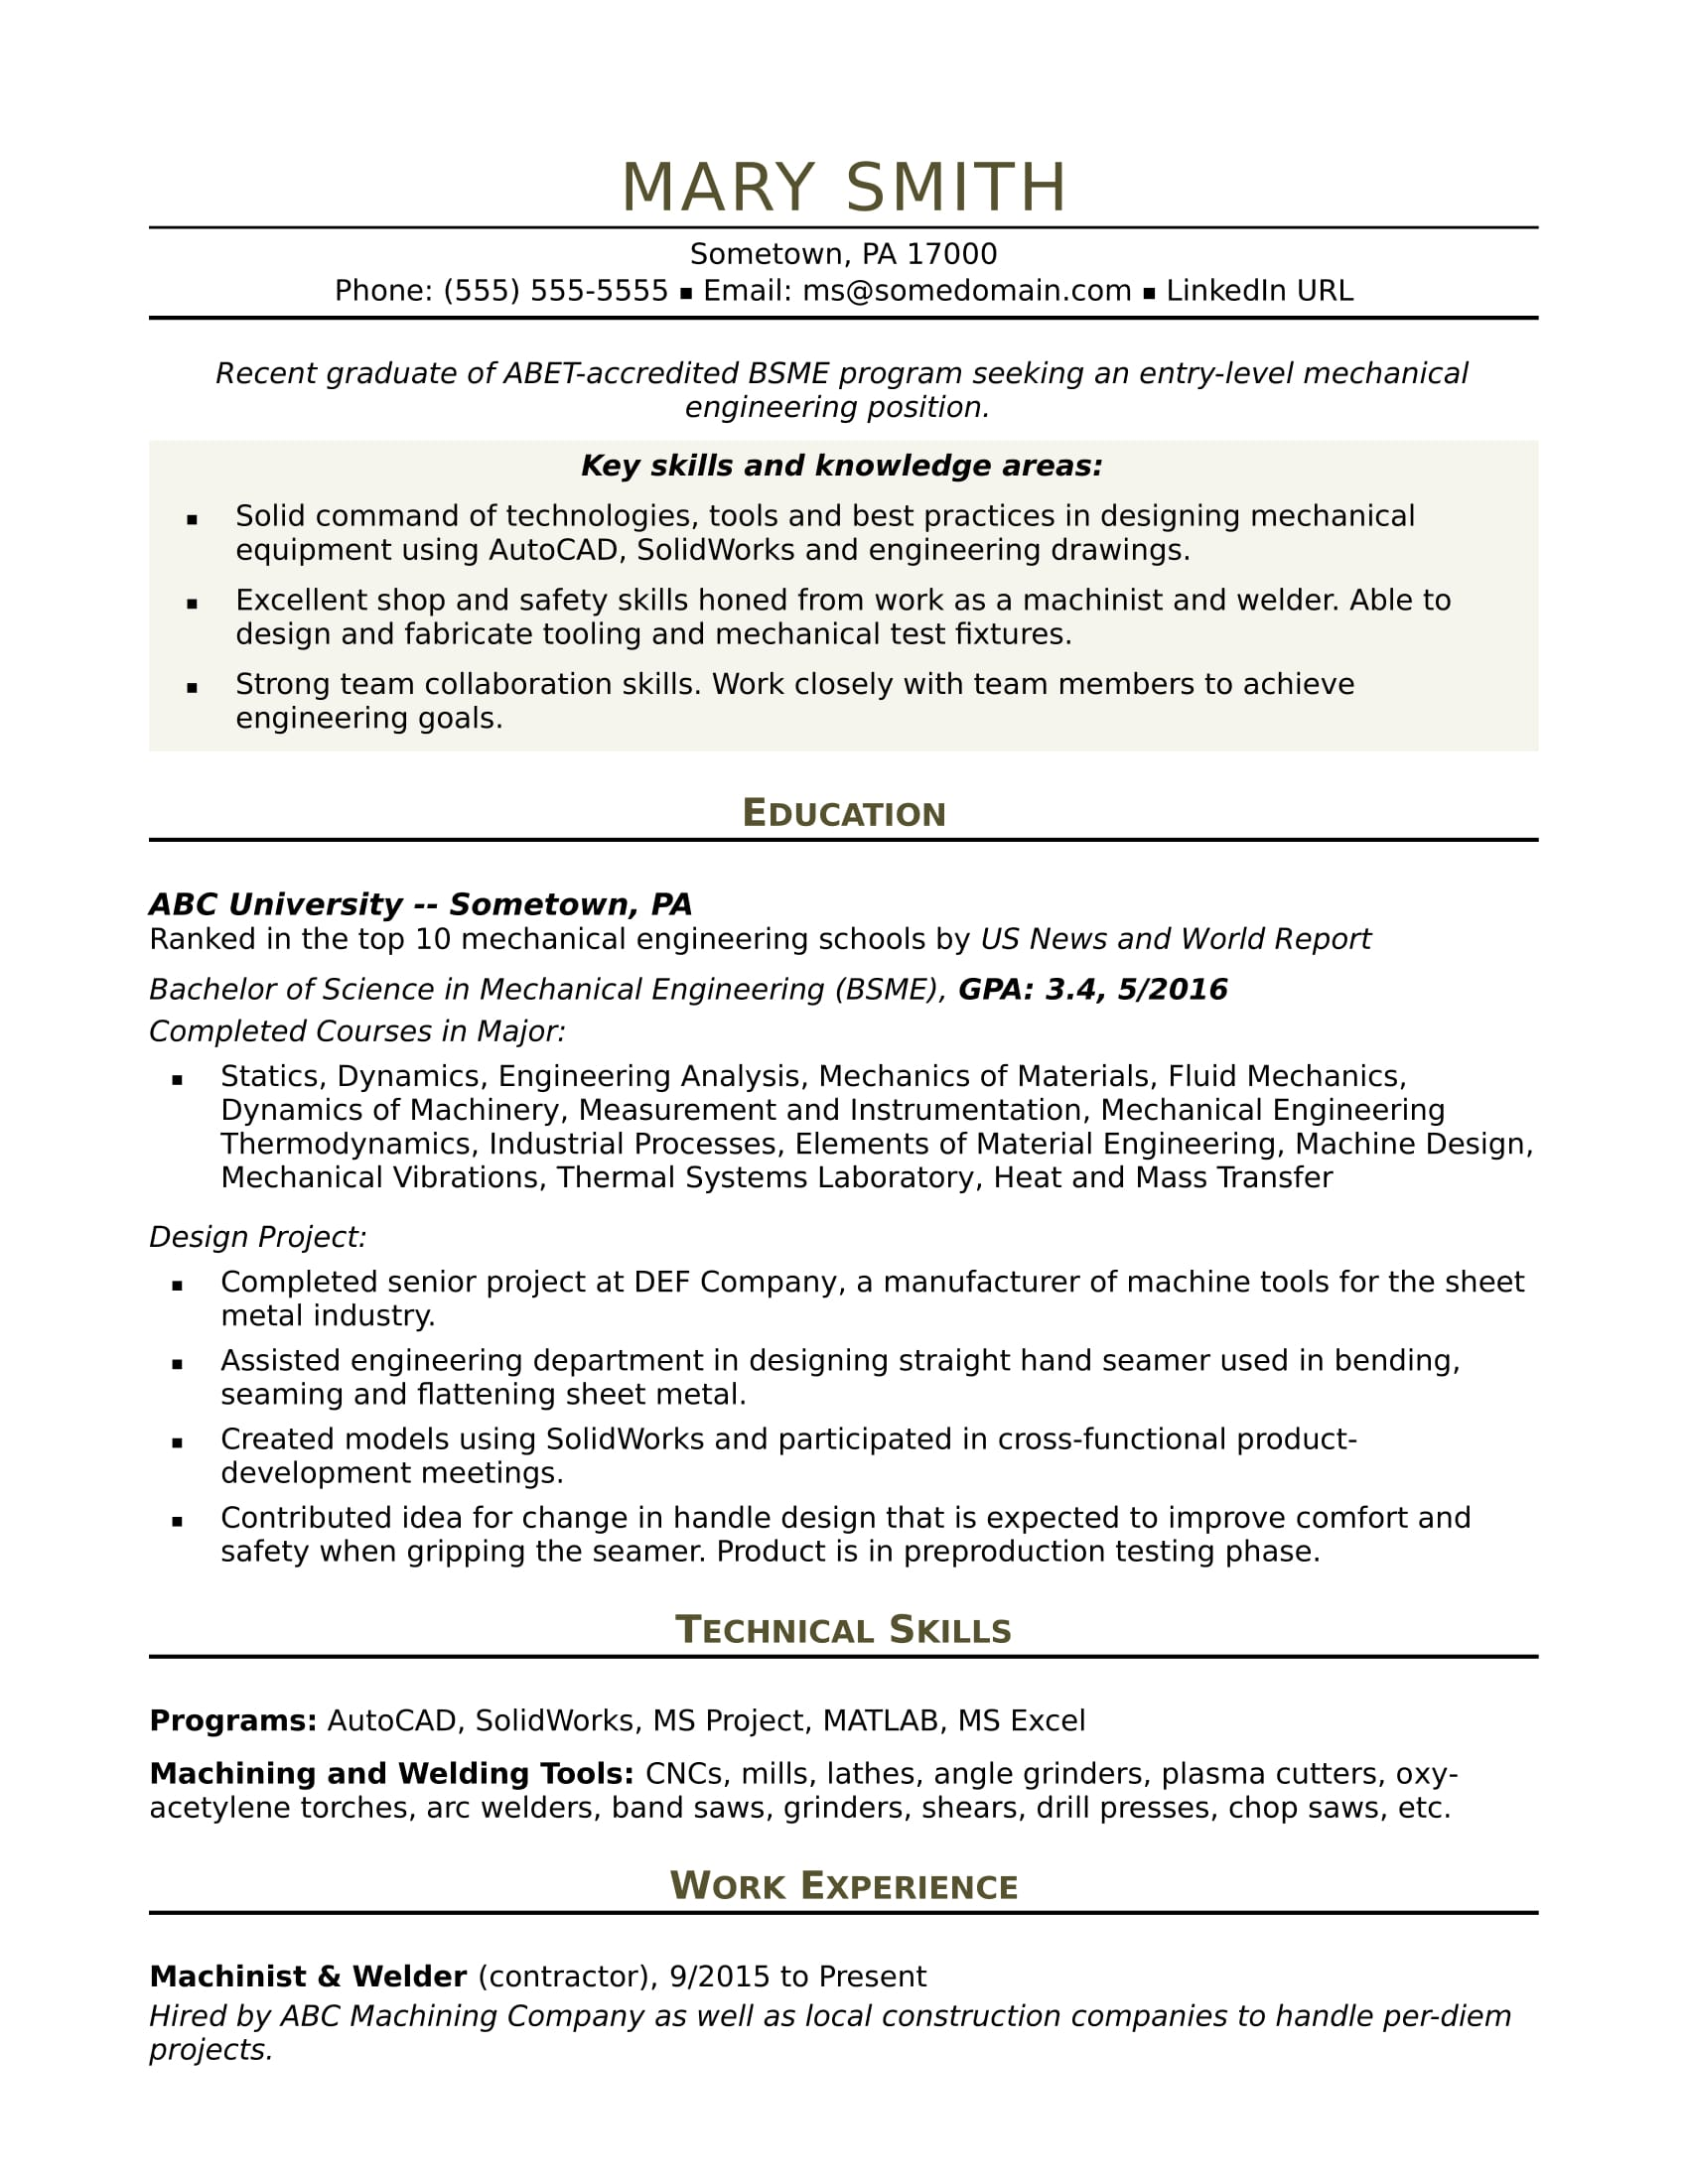 sample resume for an entry level mechanical engineer - Mechanical Engineering Resume